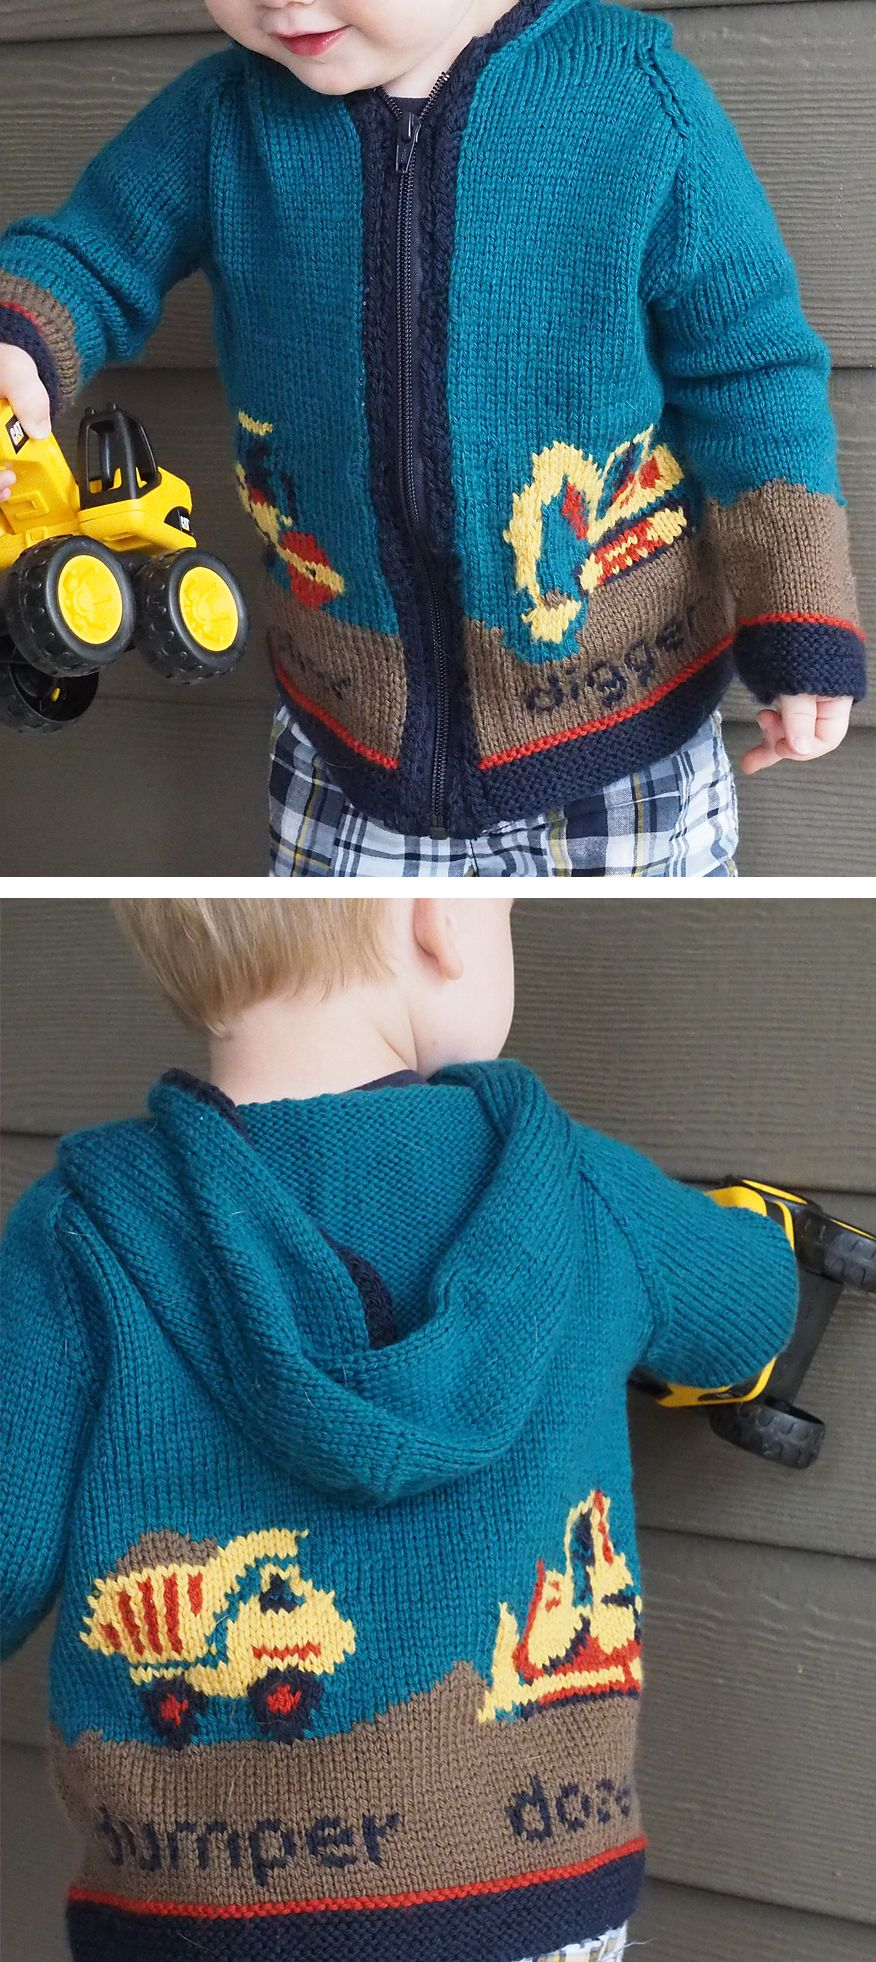 Free Knitting Pattern for Digger Jacket - Hooded cardigan sweater ...